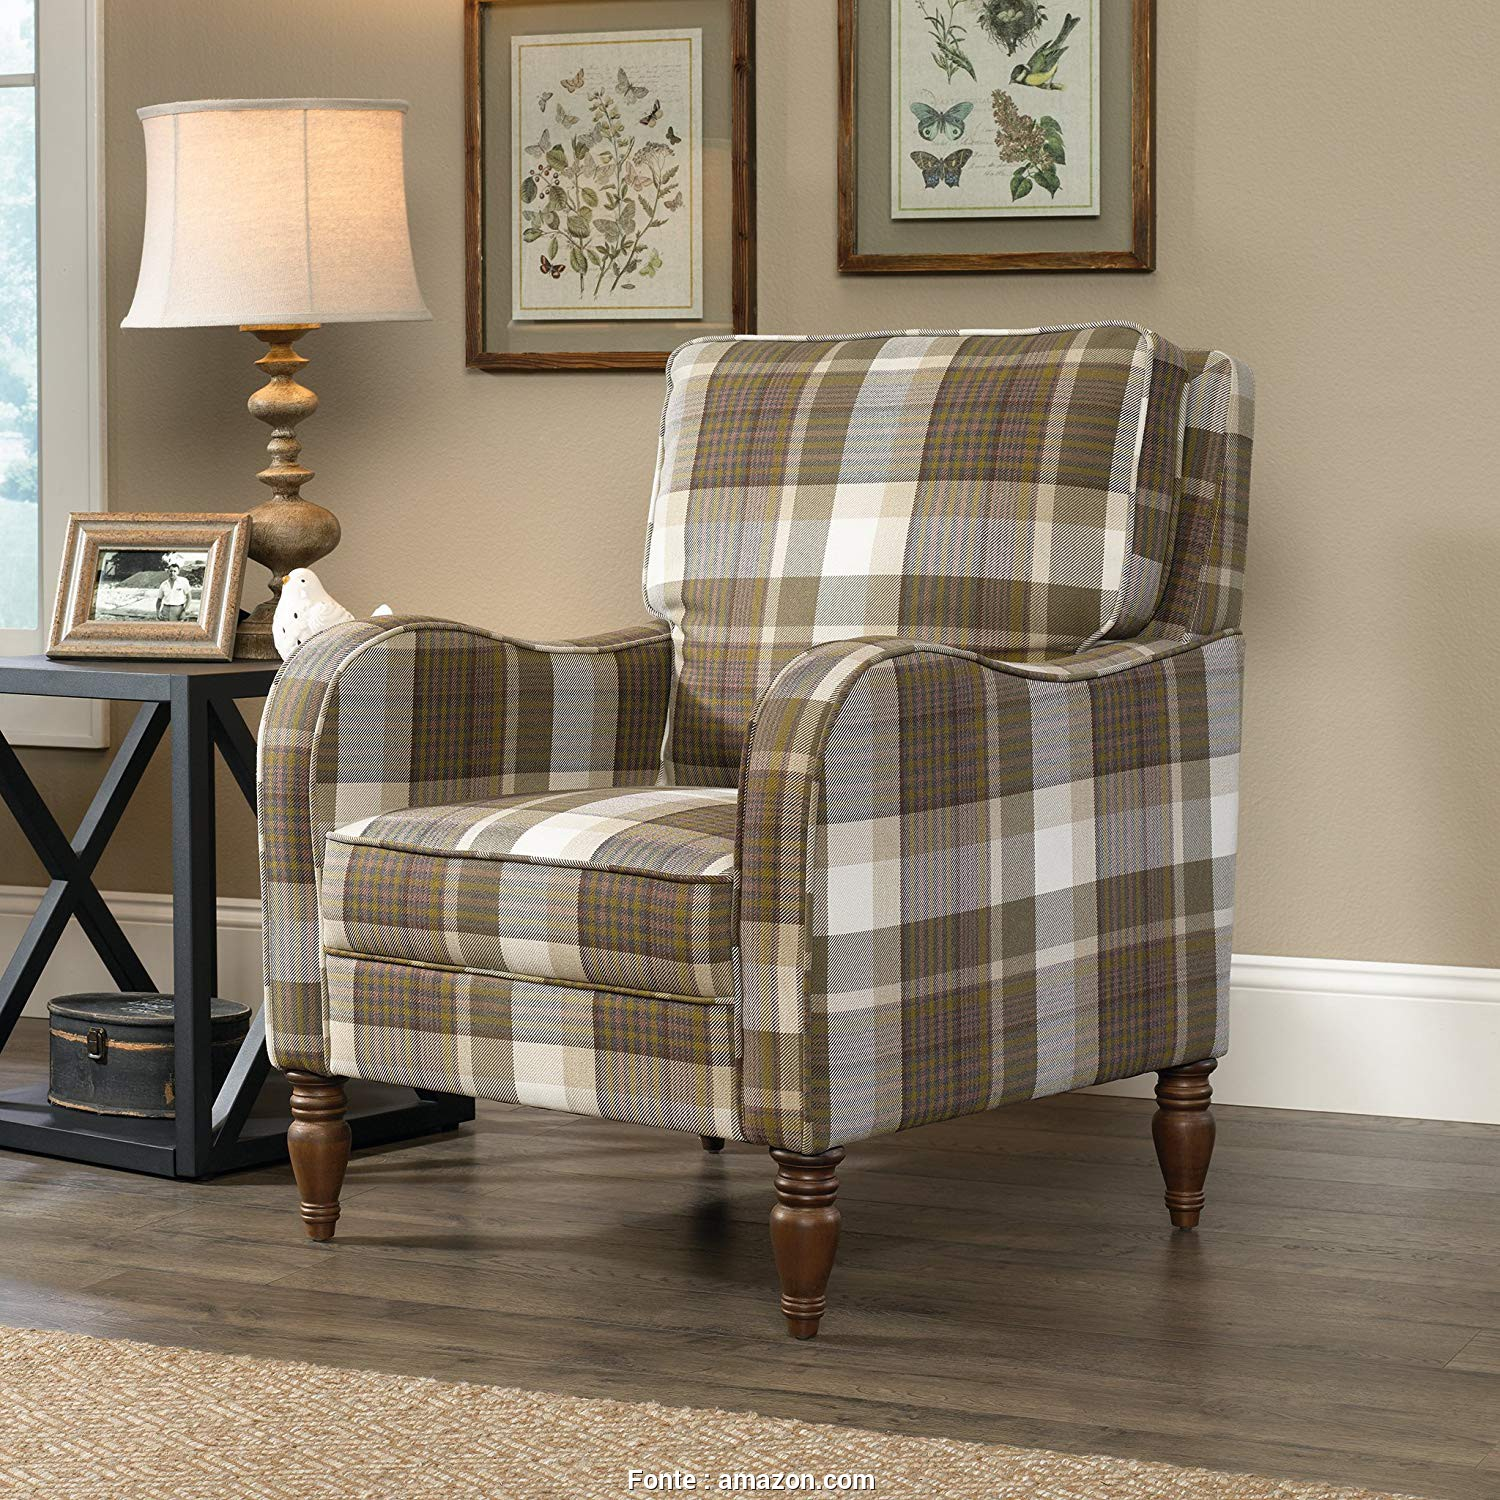 "Plaid Divano Amazon, Affascinante Amazon.Com: Sauder 420076, Grange Accent Chair L: 29.13"" X W: 33.07"" X H: 33.86"" Plaid: Kitchen & Dining"